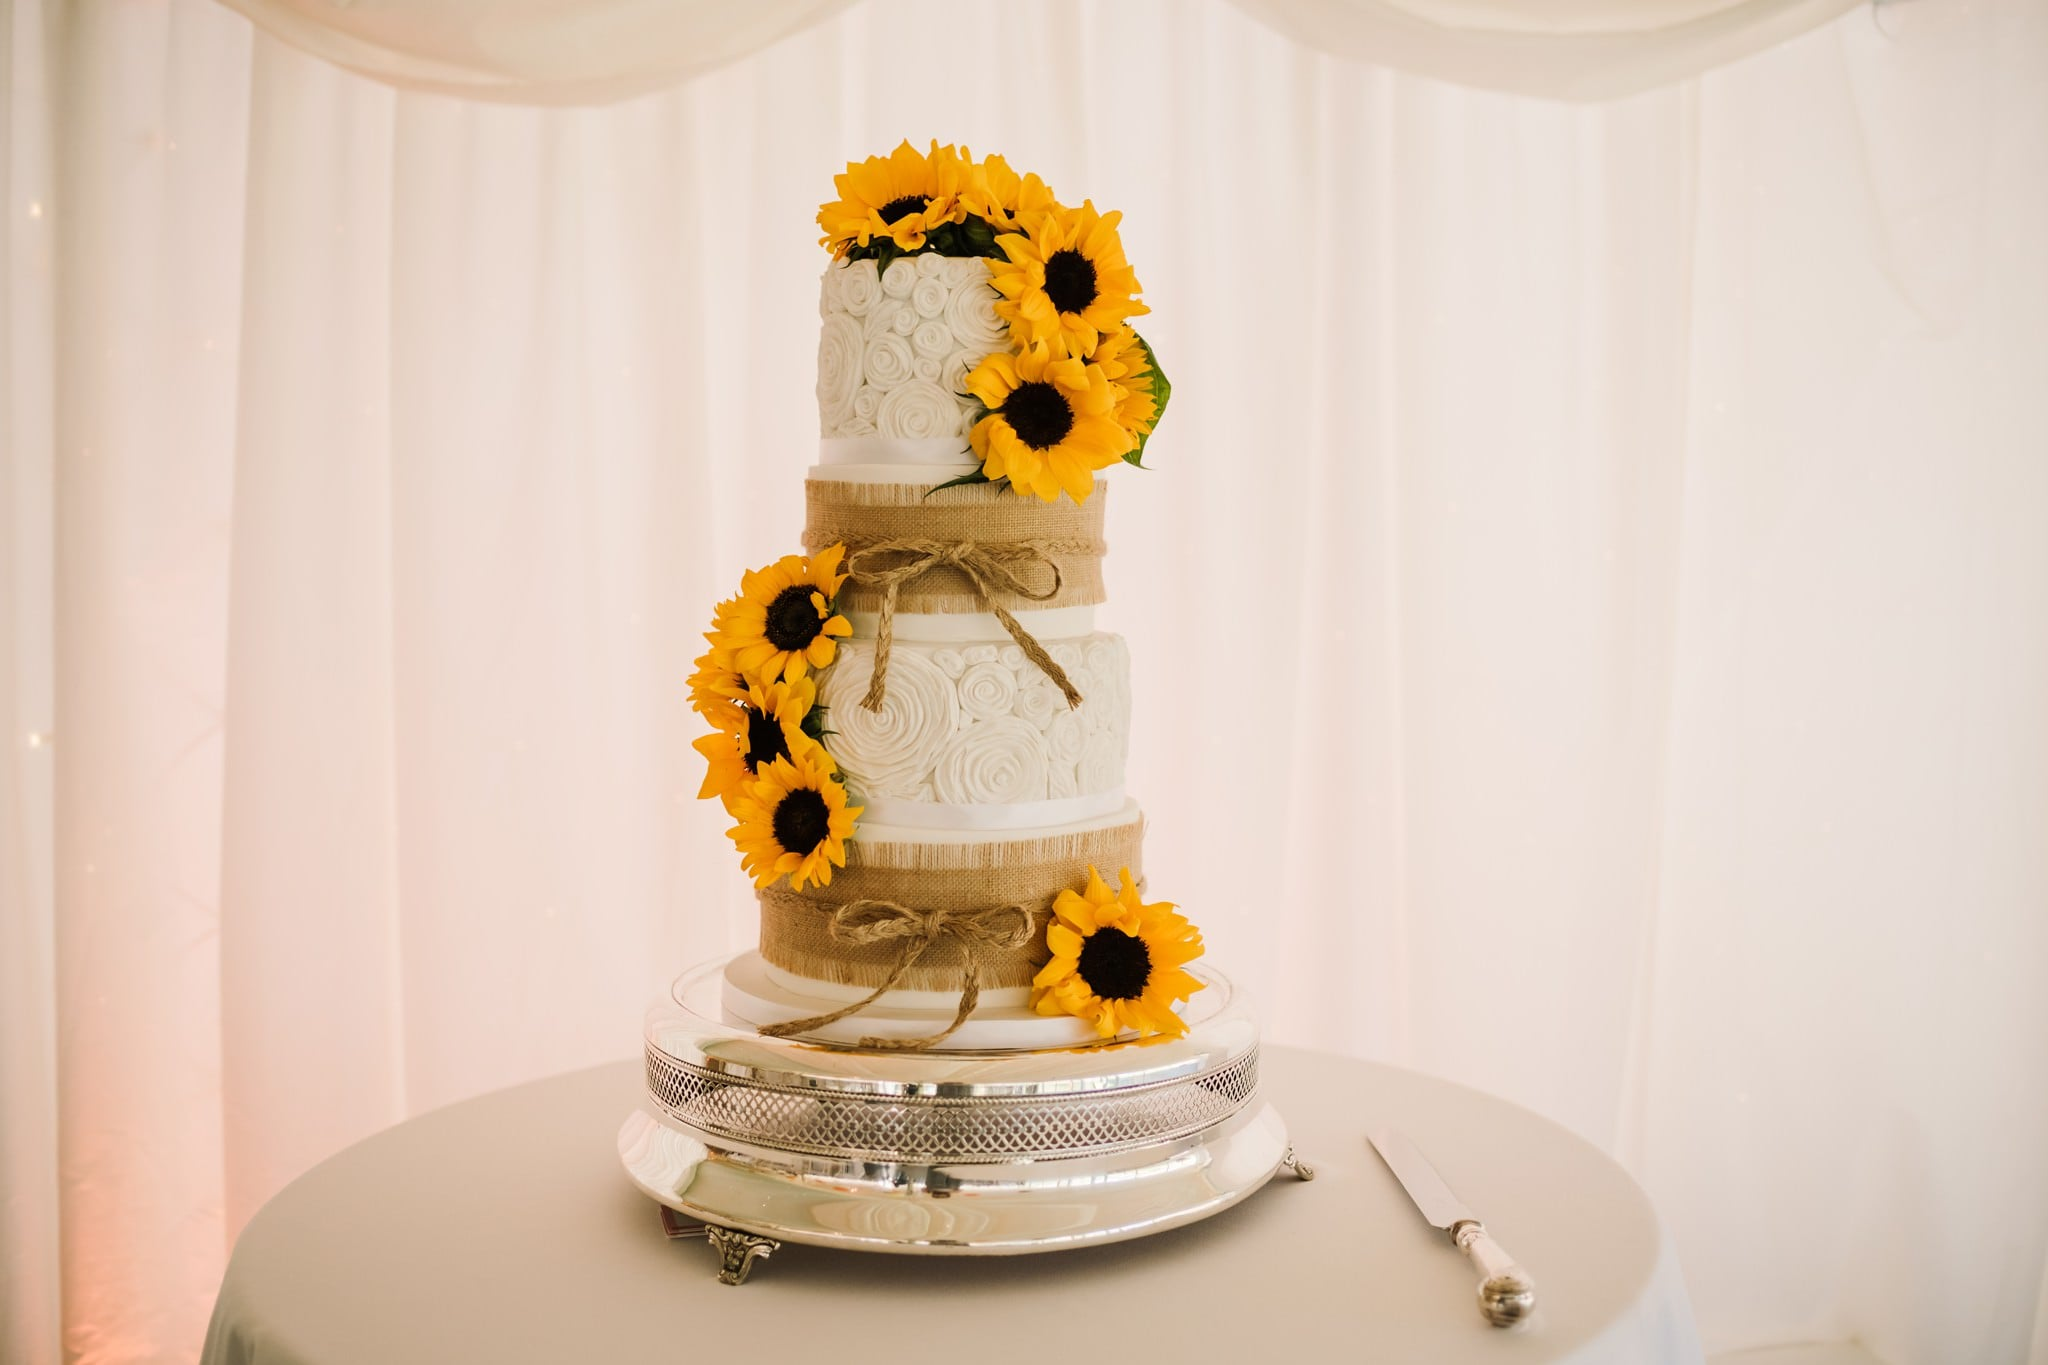 Wedding cake at Parley Manor